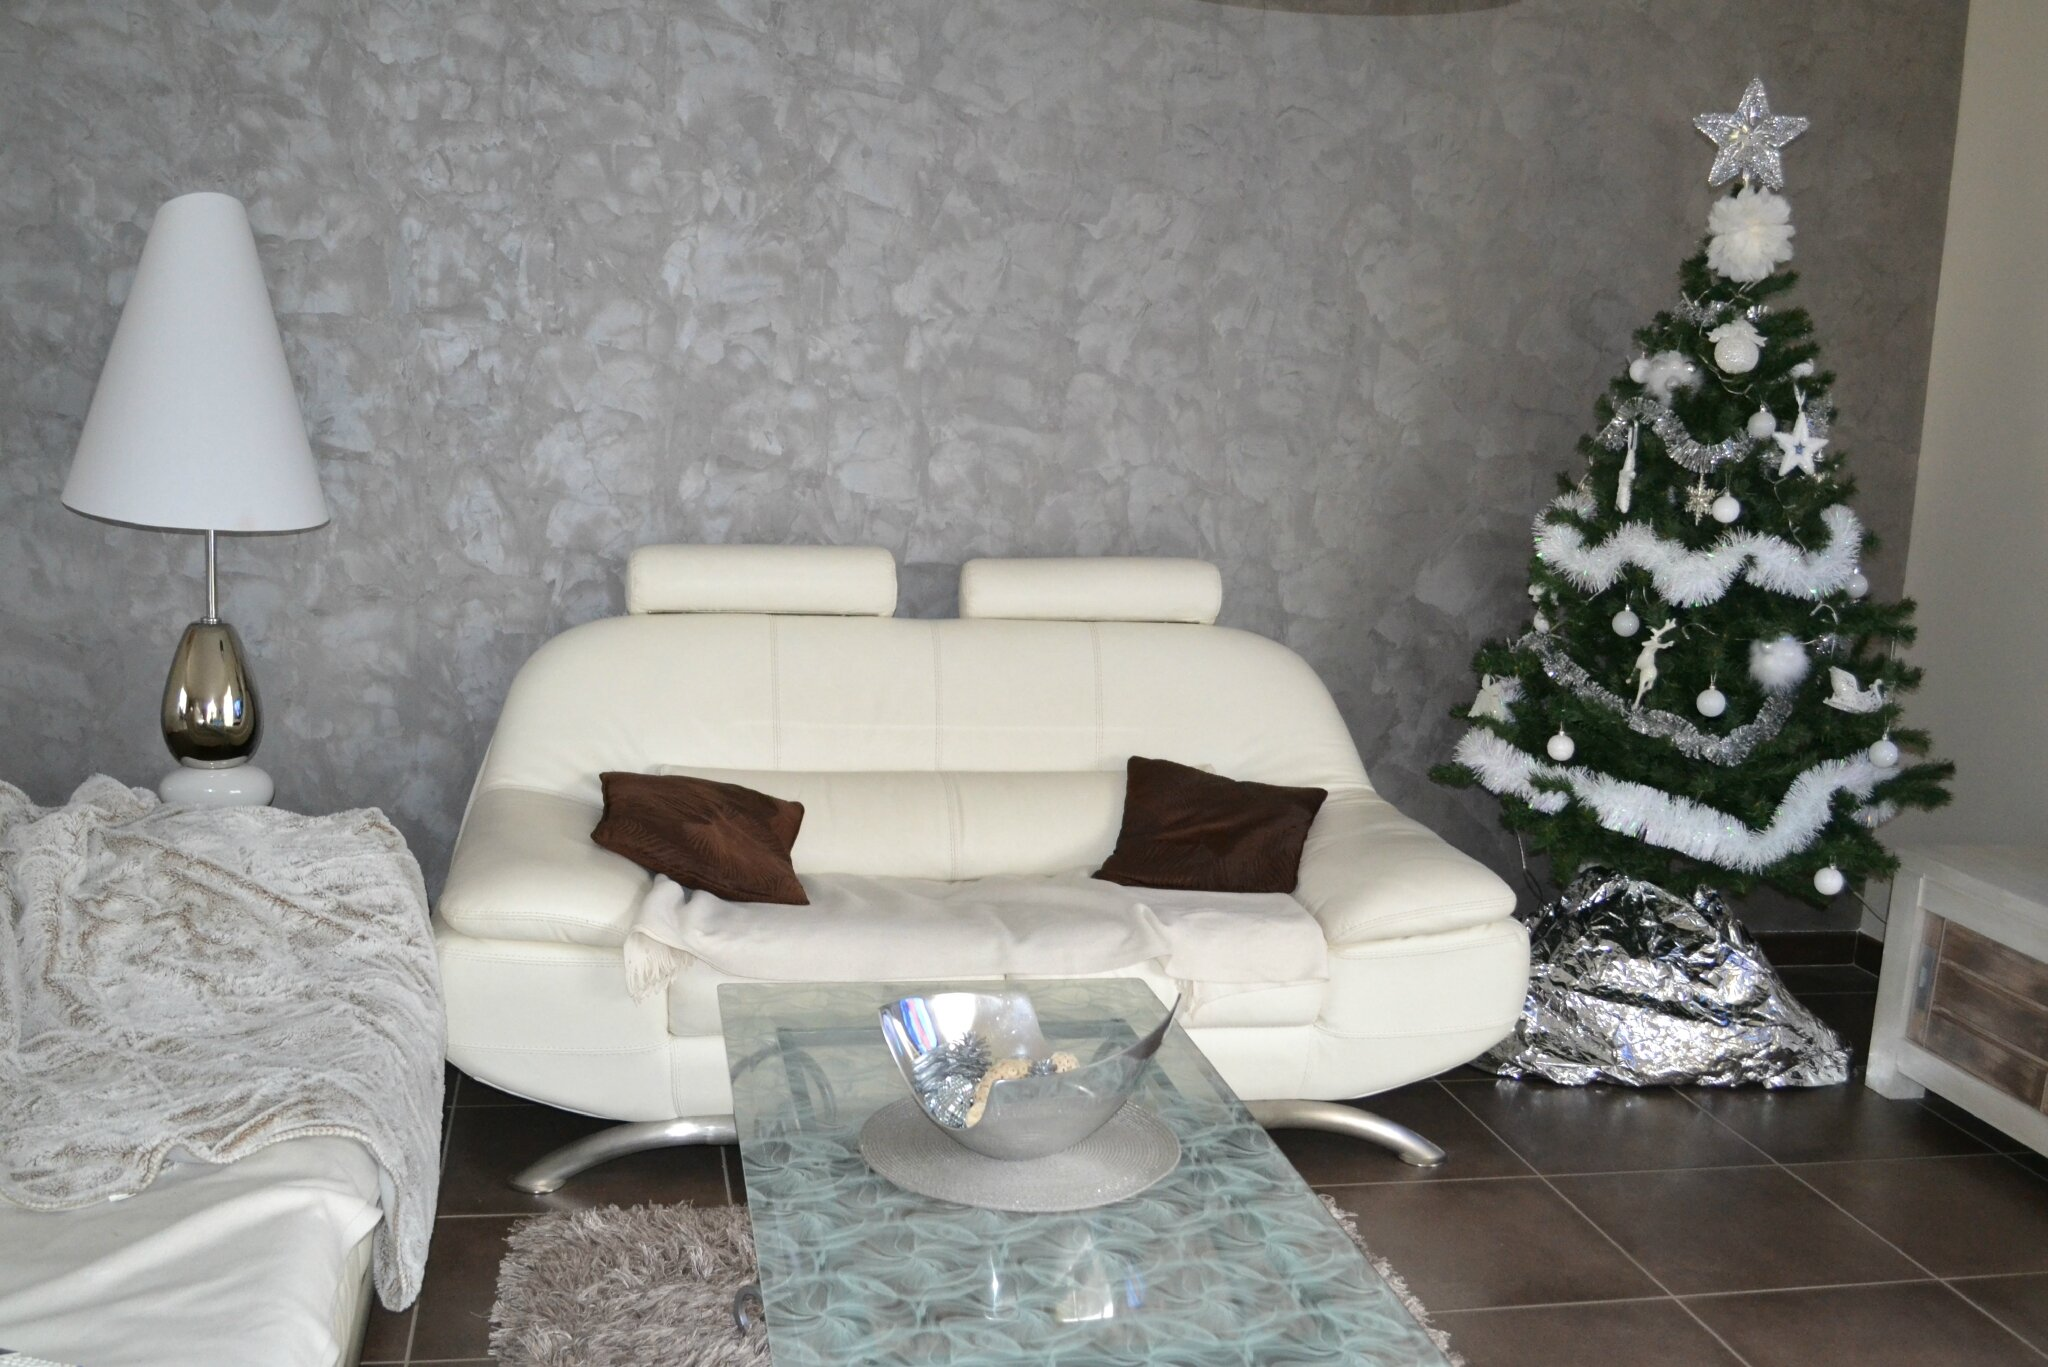 mon noel blanc et argent chez lilypouce. Black Bedroom Furniture Sets. Home Design Ideas